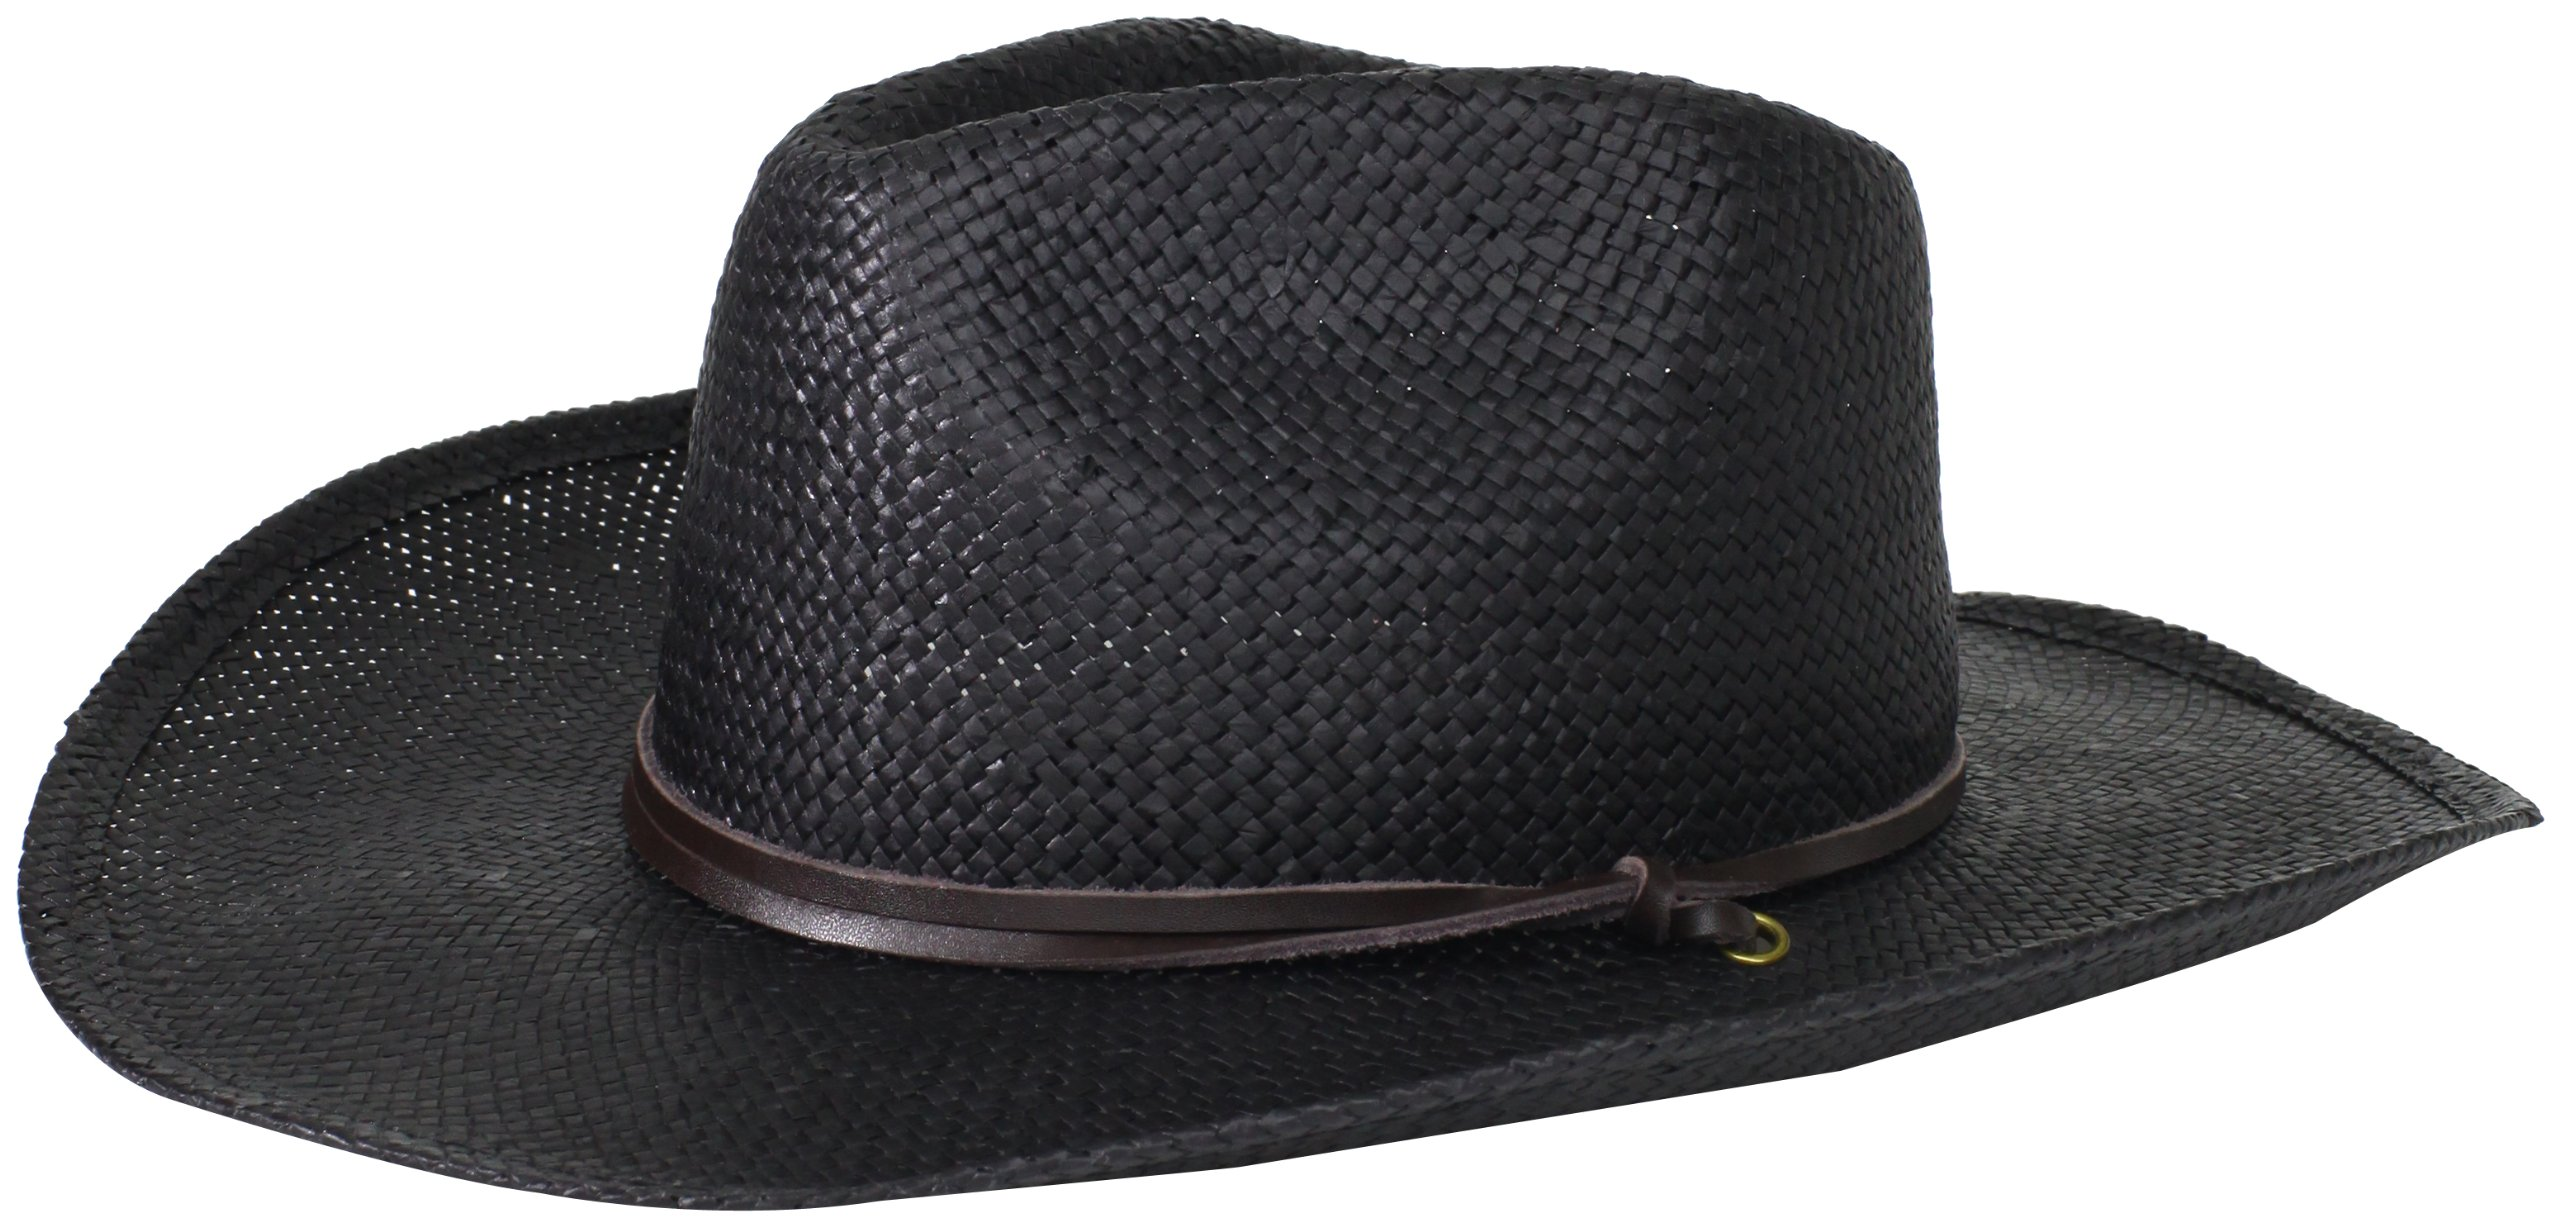 San Diego Hat Company Women's Soft Toyo Paper Cowboy Hat, Black, One Size